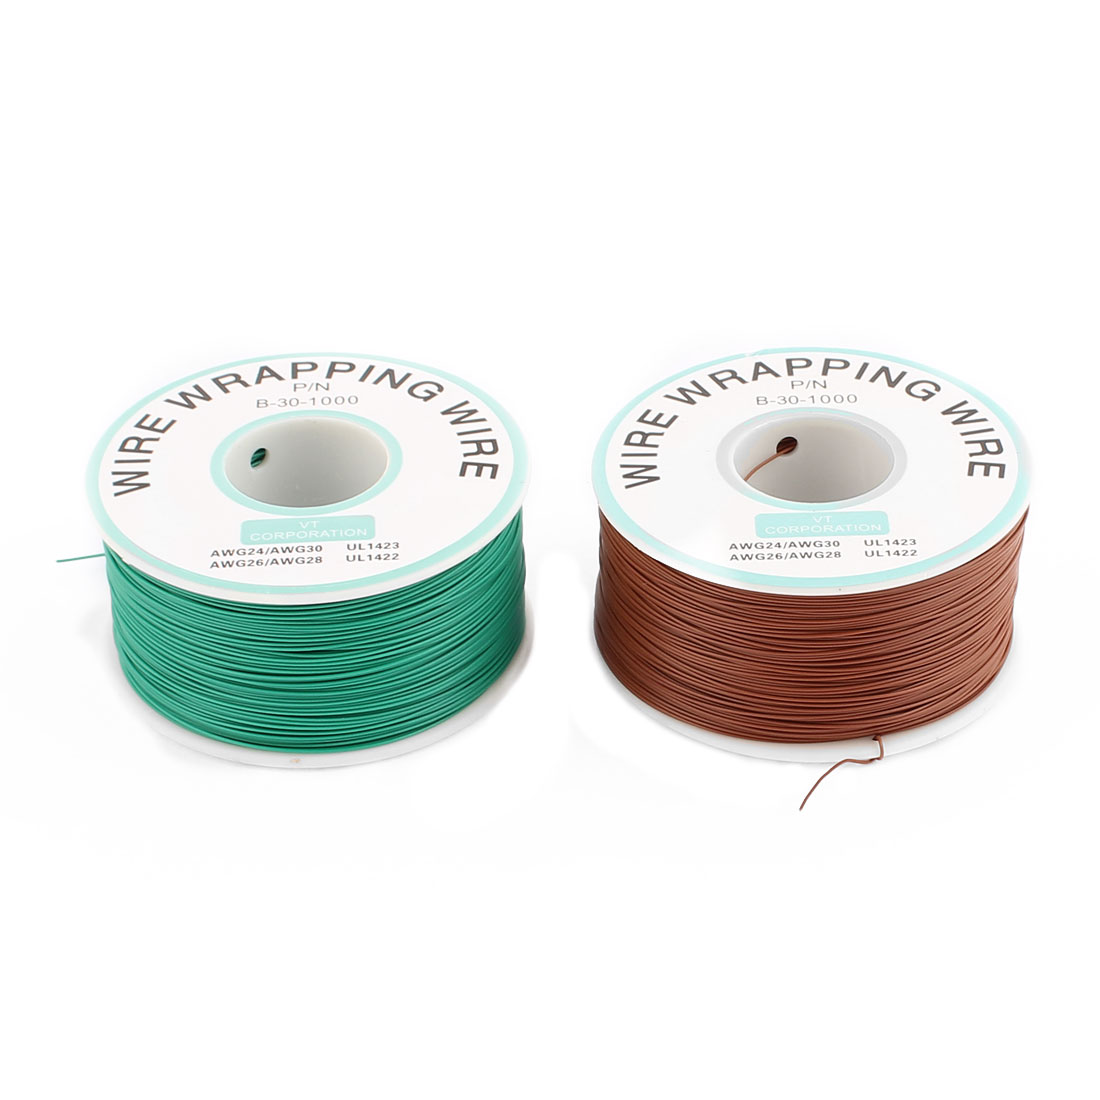 2 Pcs High Temperature Resistant Wraping Wire B-30-1000 Green and Brown